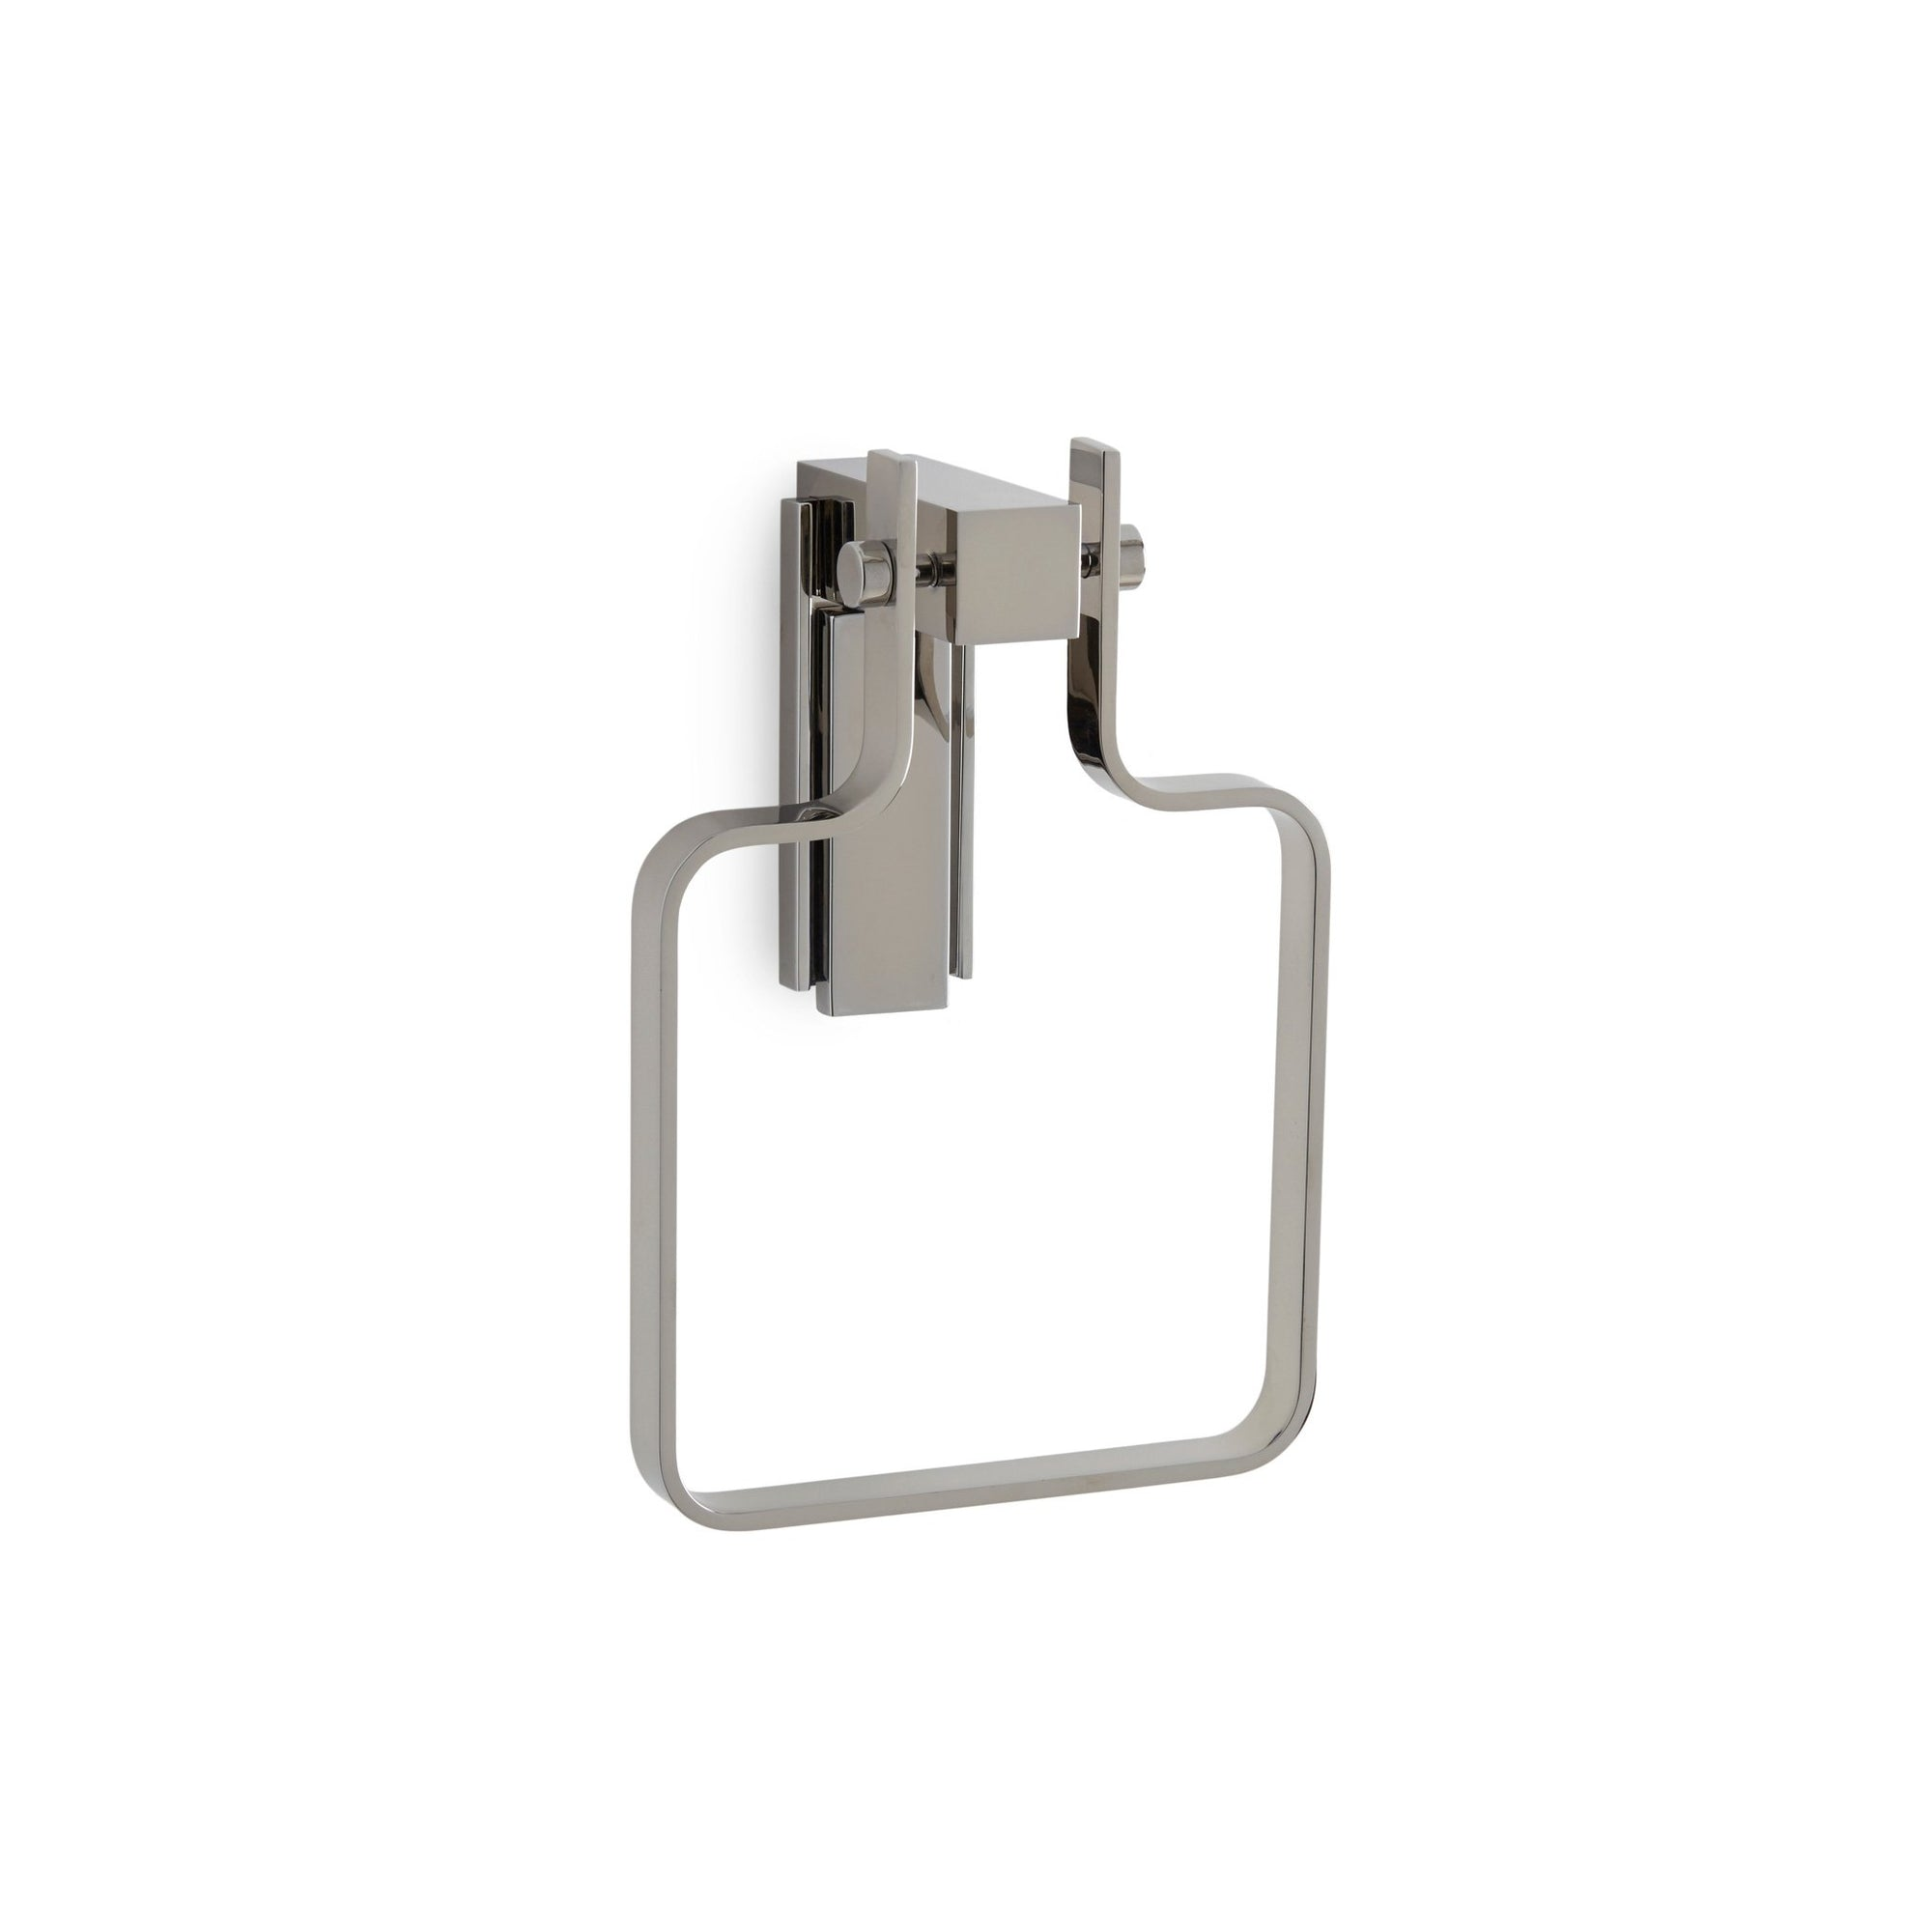 3456-MLIN-CP Sherle Wagner International Apollo Towel Ring with Metal insert in Polished Chrome metal finish